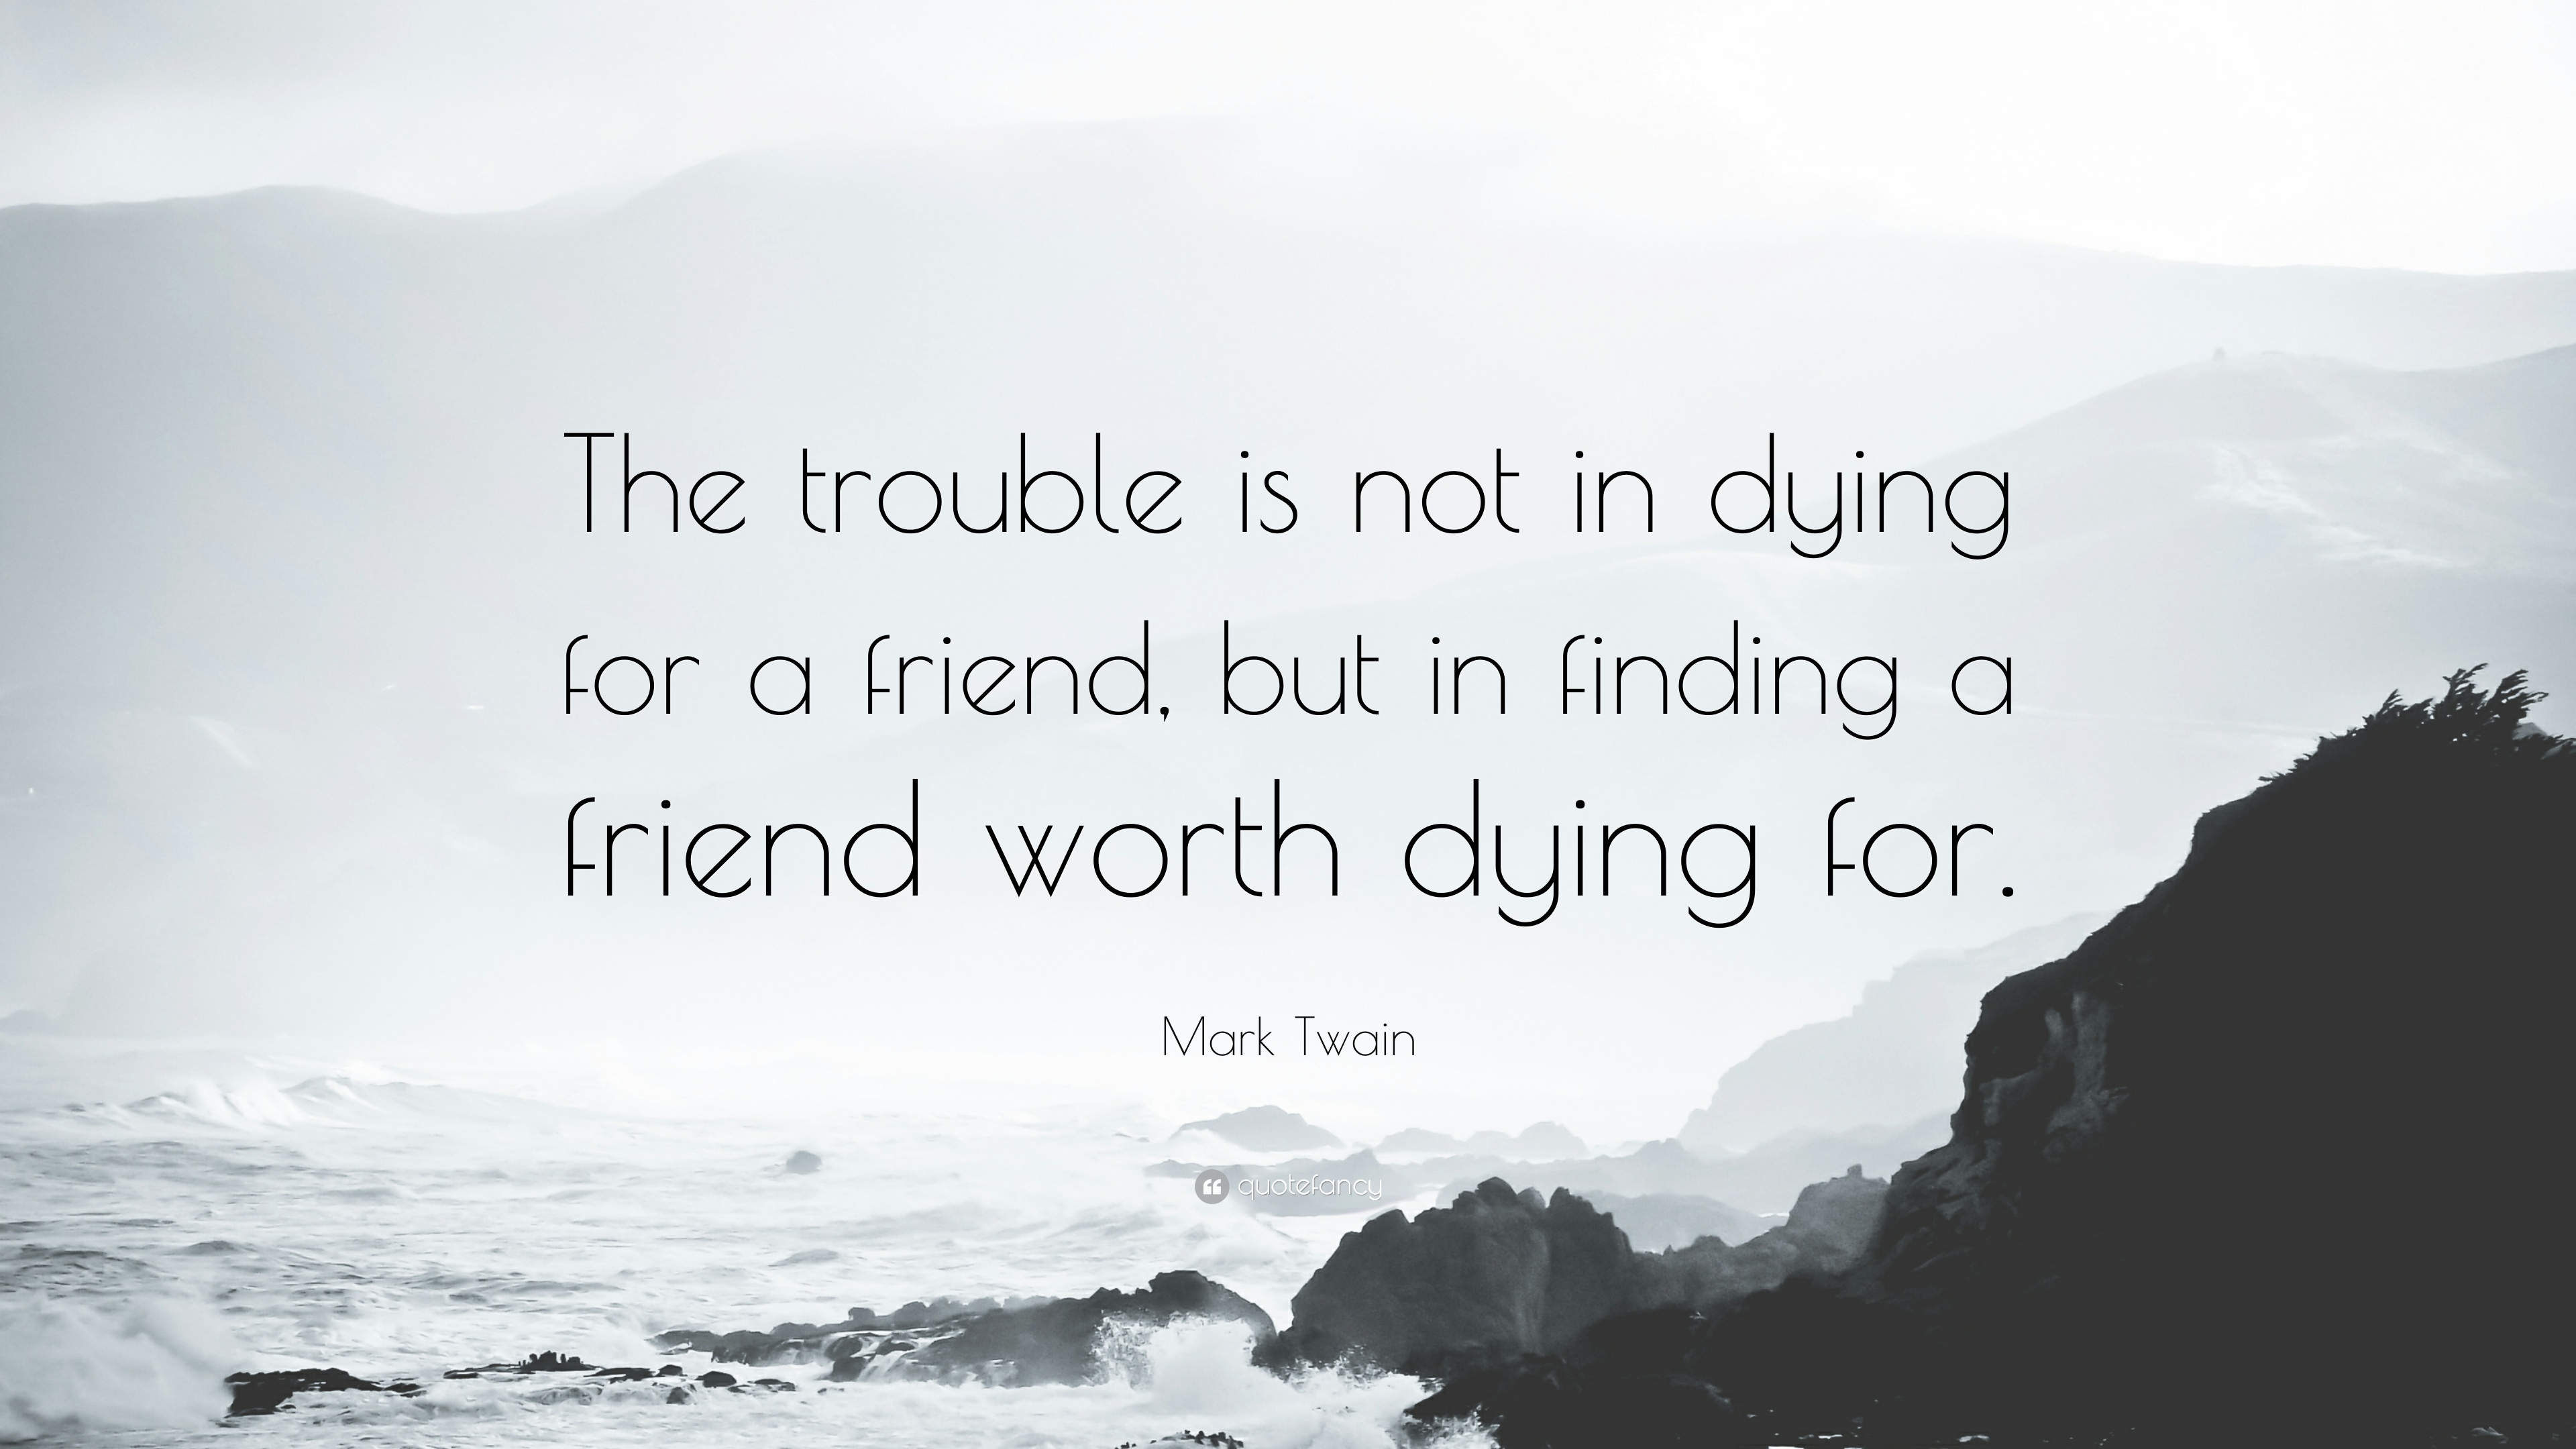 Quotes About Friendship Friendship Quotes 21 Wallpapers  Quotefancy